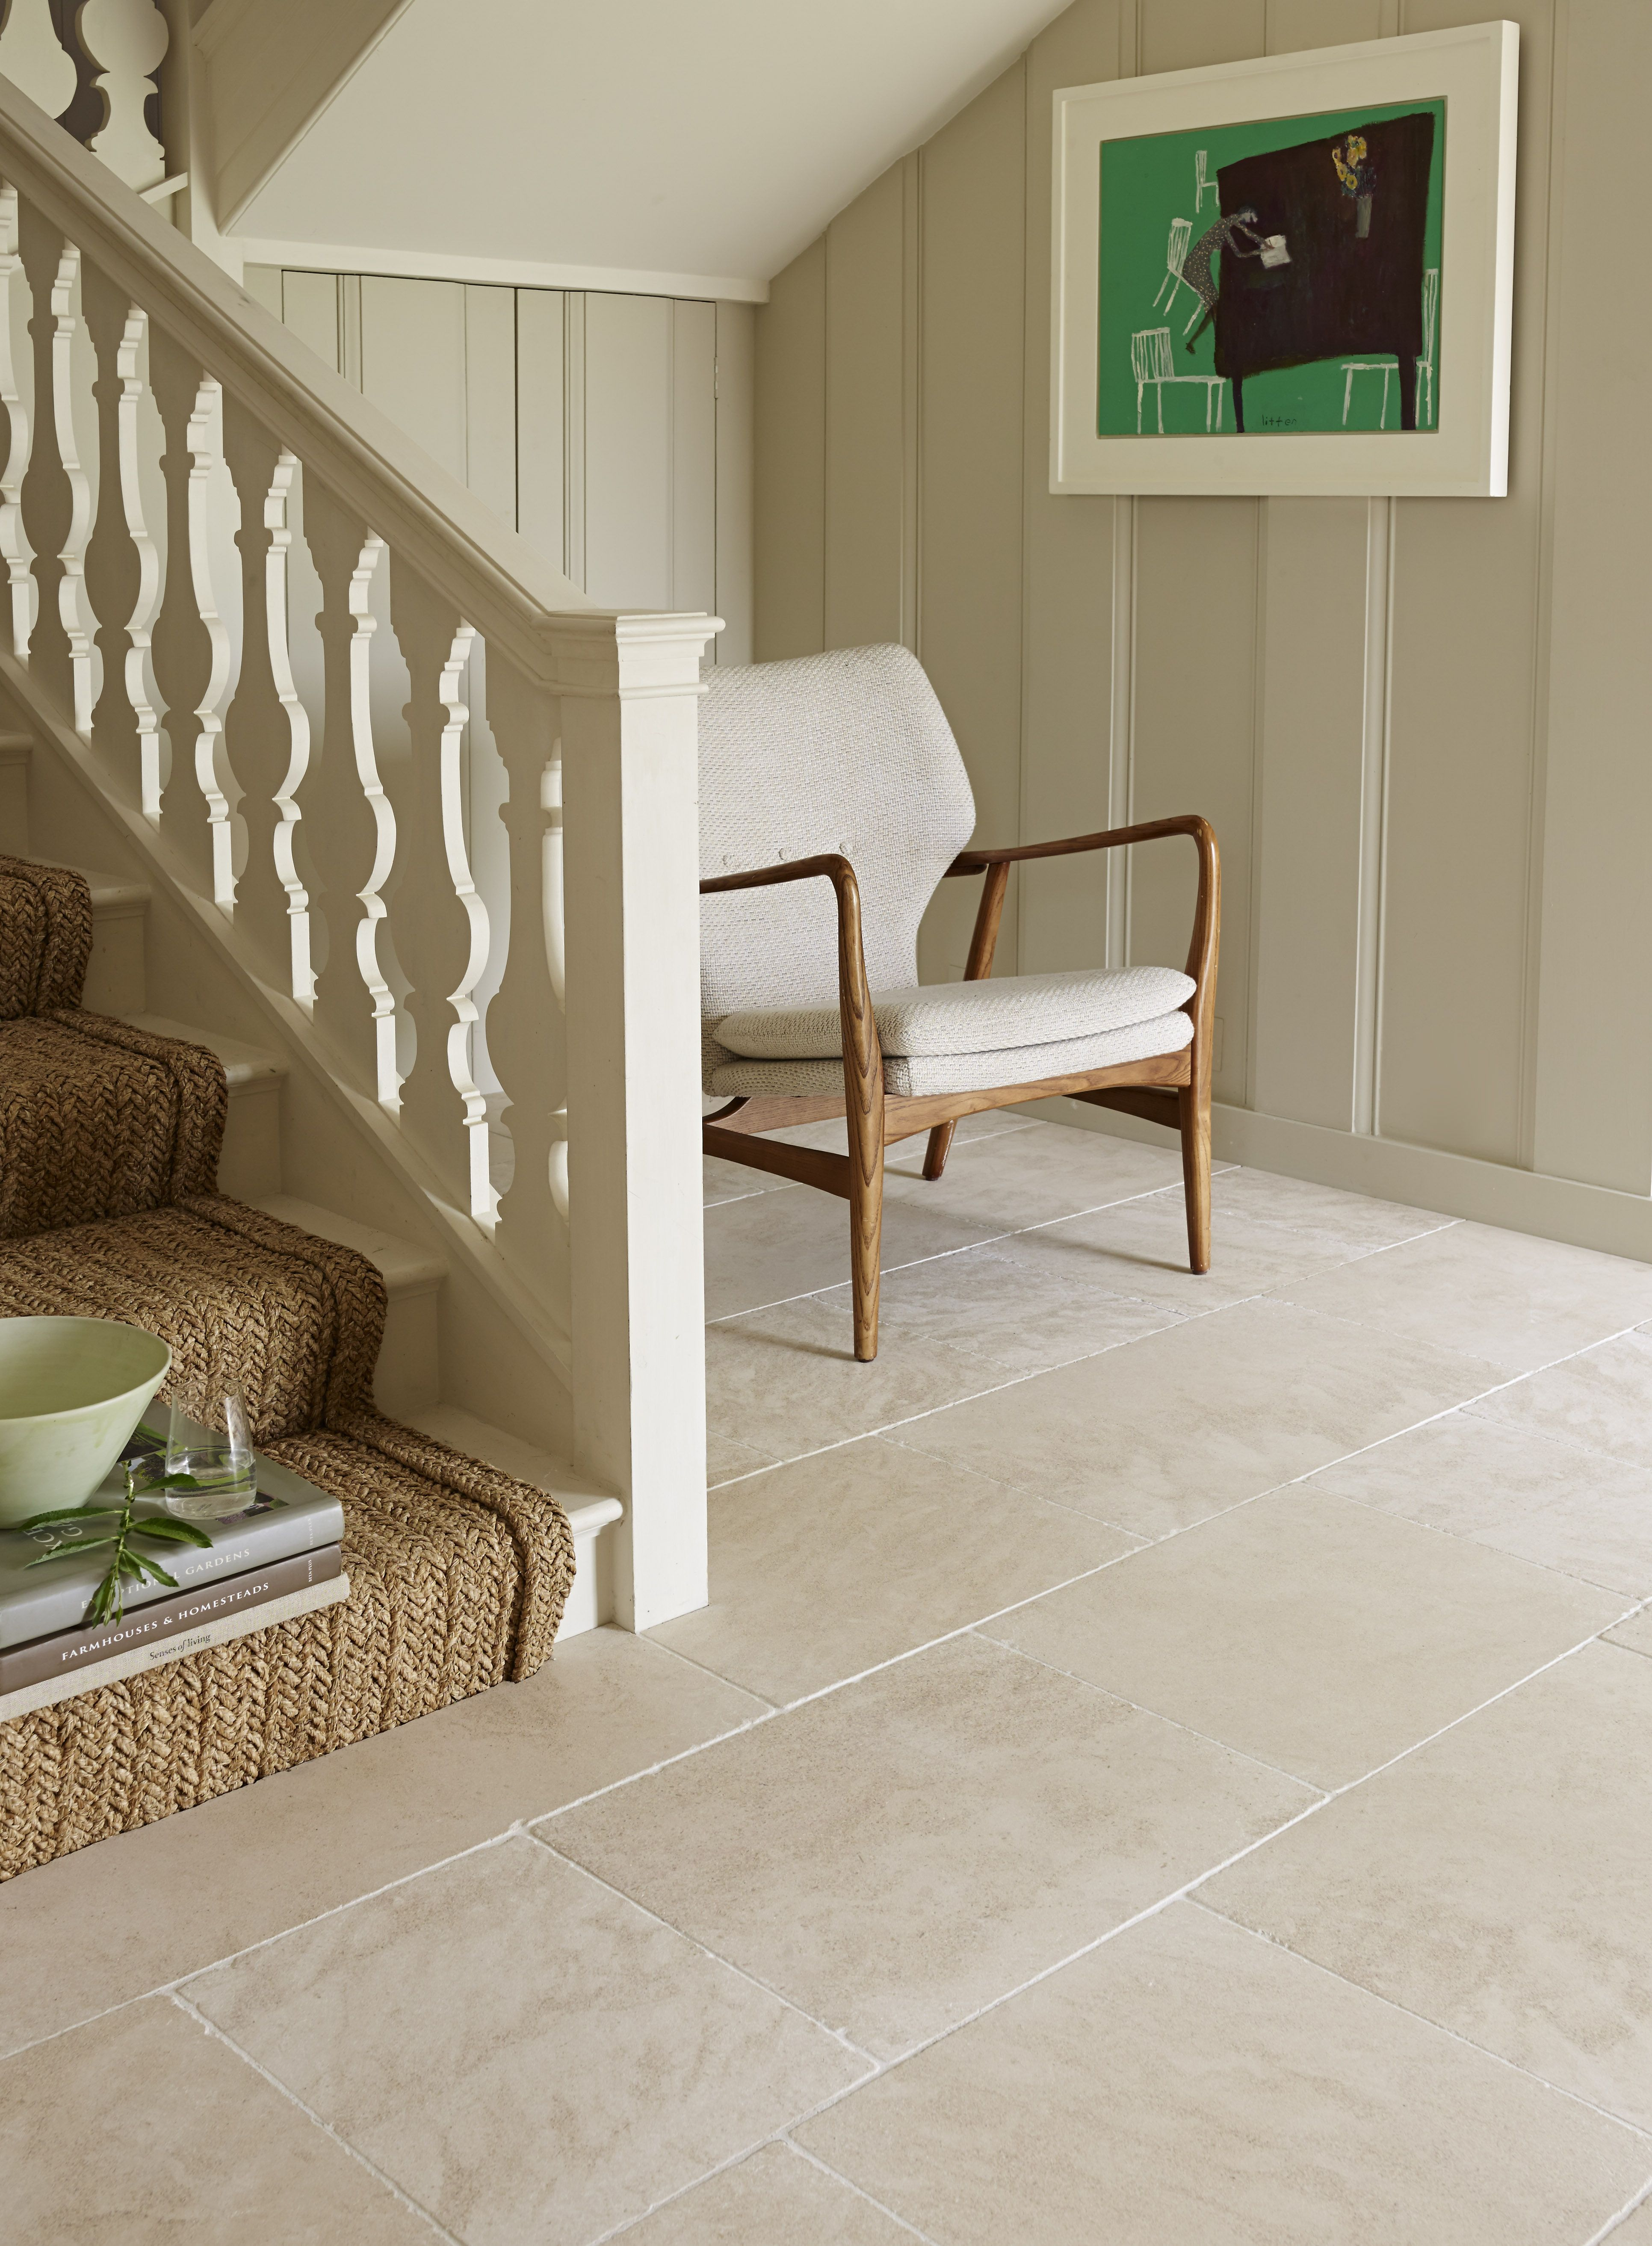 Moleanos beige tumbled limestone new for 2014 mandarinstone kitchen tiles beige moleanos beige tumbled limestone floor tiles create and elegant and timeless look dailygadgetfo Gallery